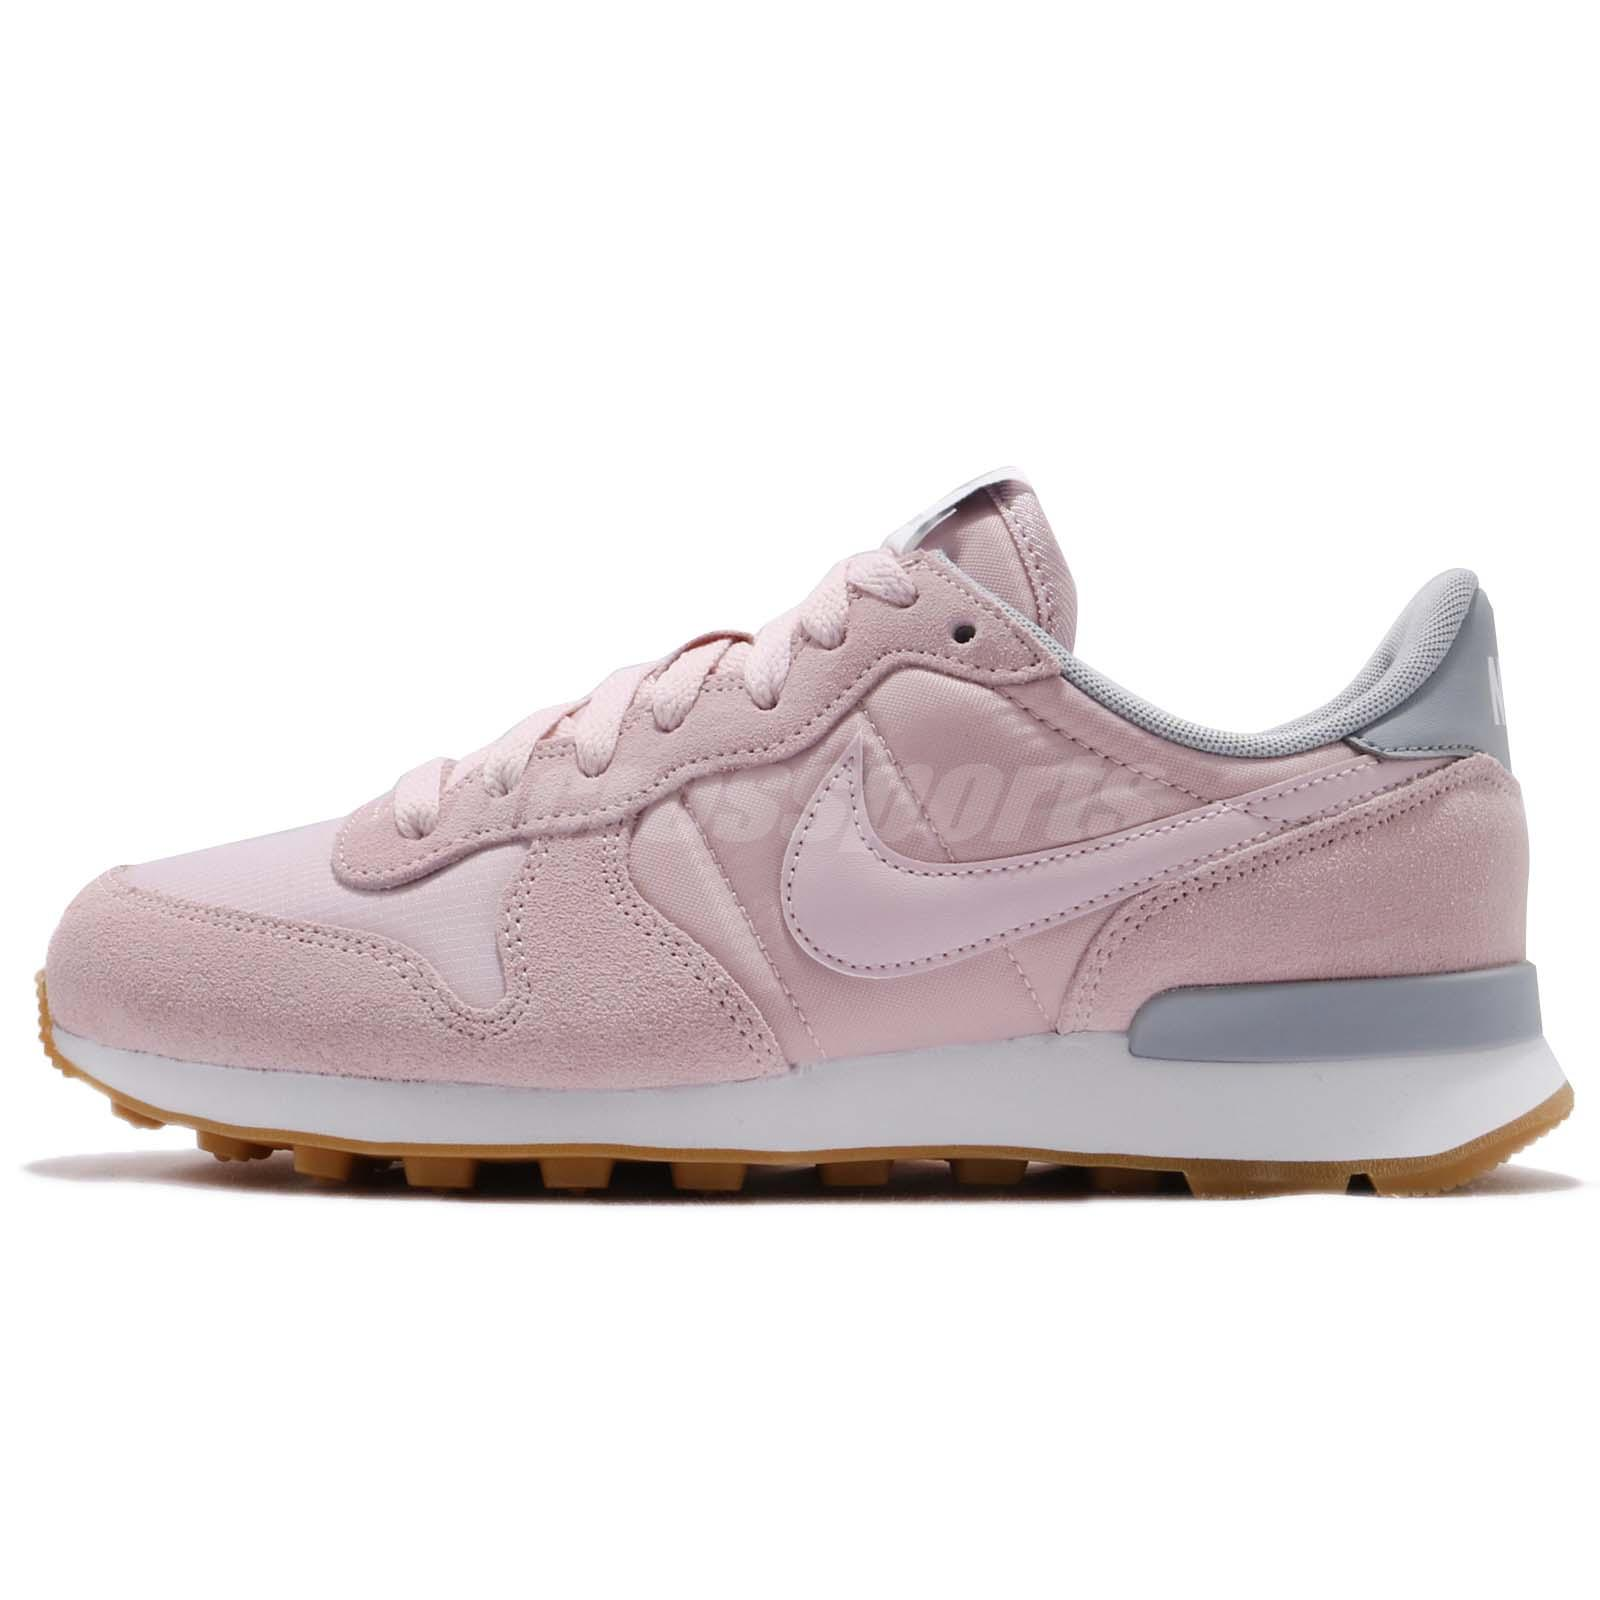 5d6b246a3daa Nike Wmns Internationalist Gum Barely Rose Pink Women Running Shoes 828407- 612